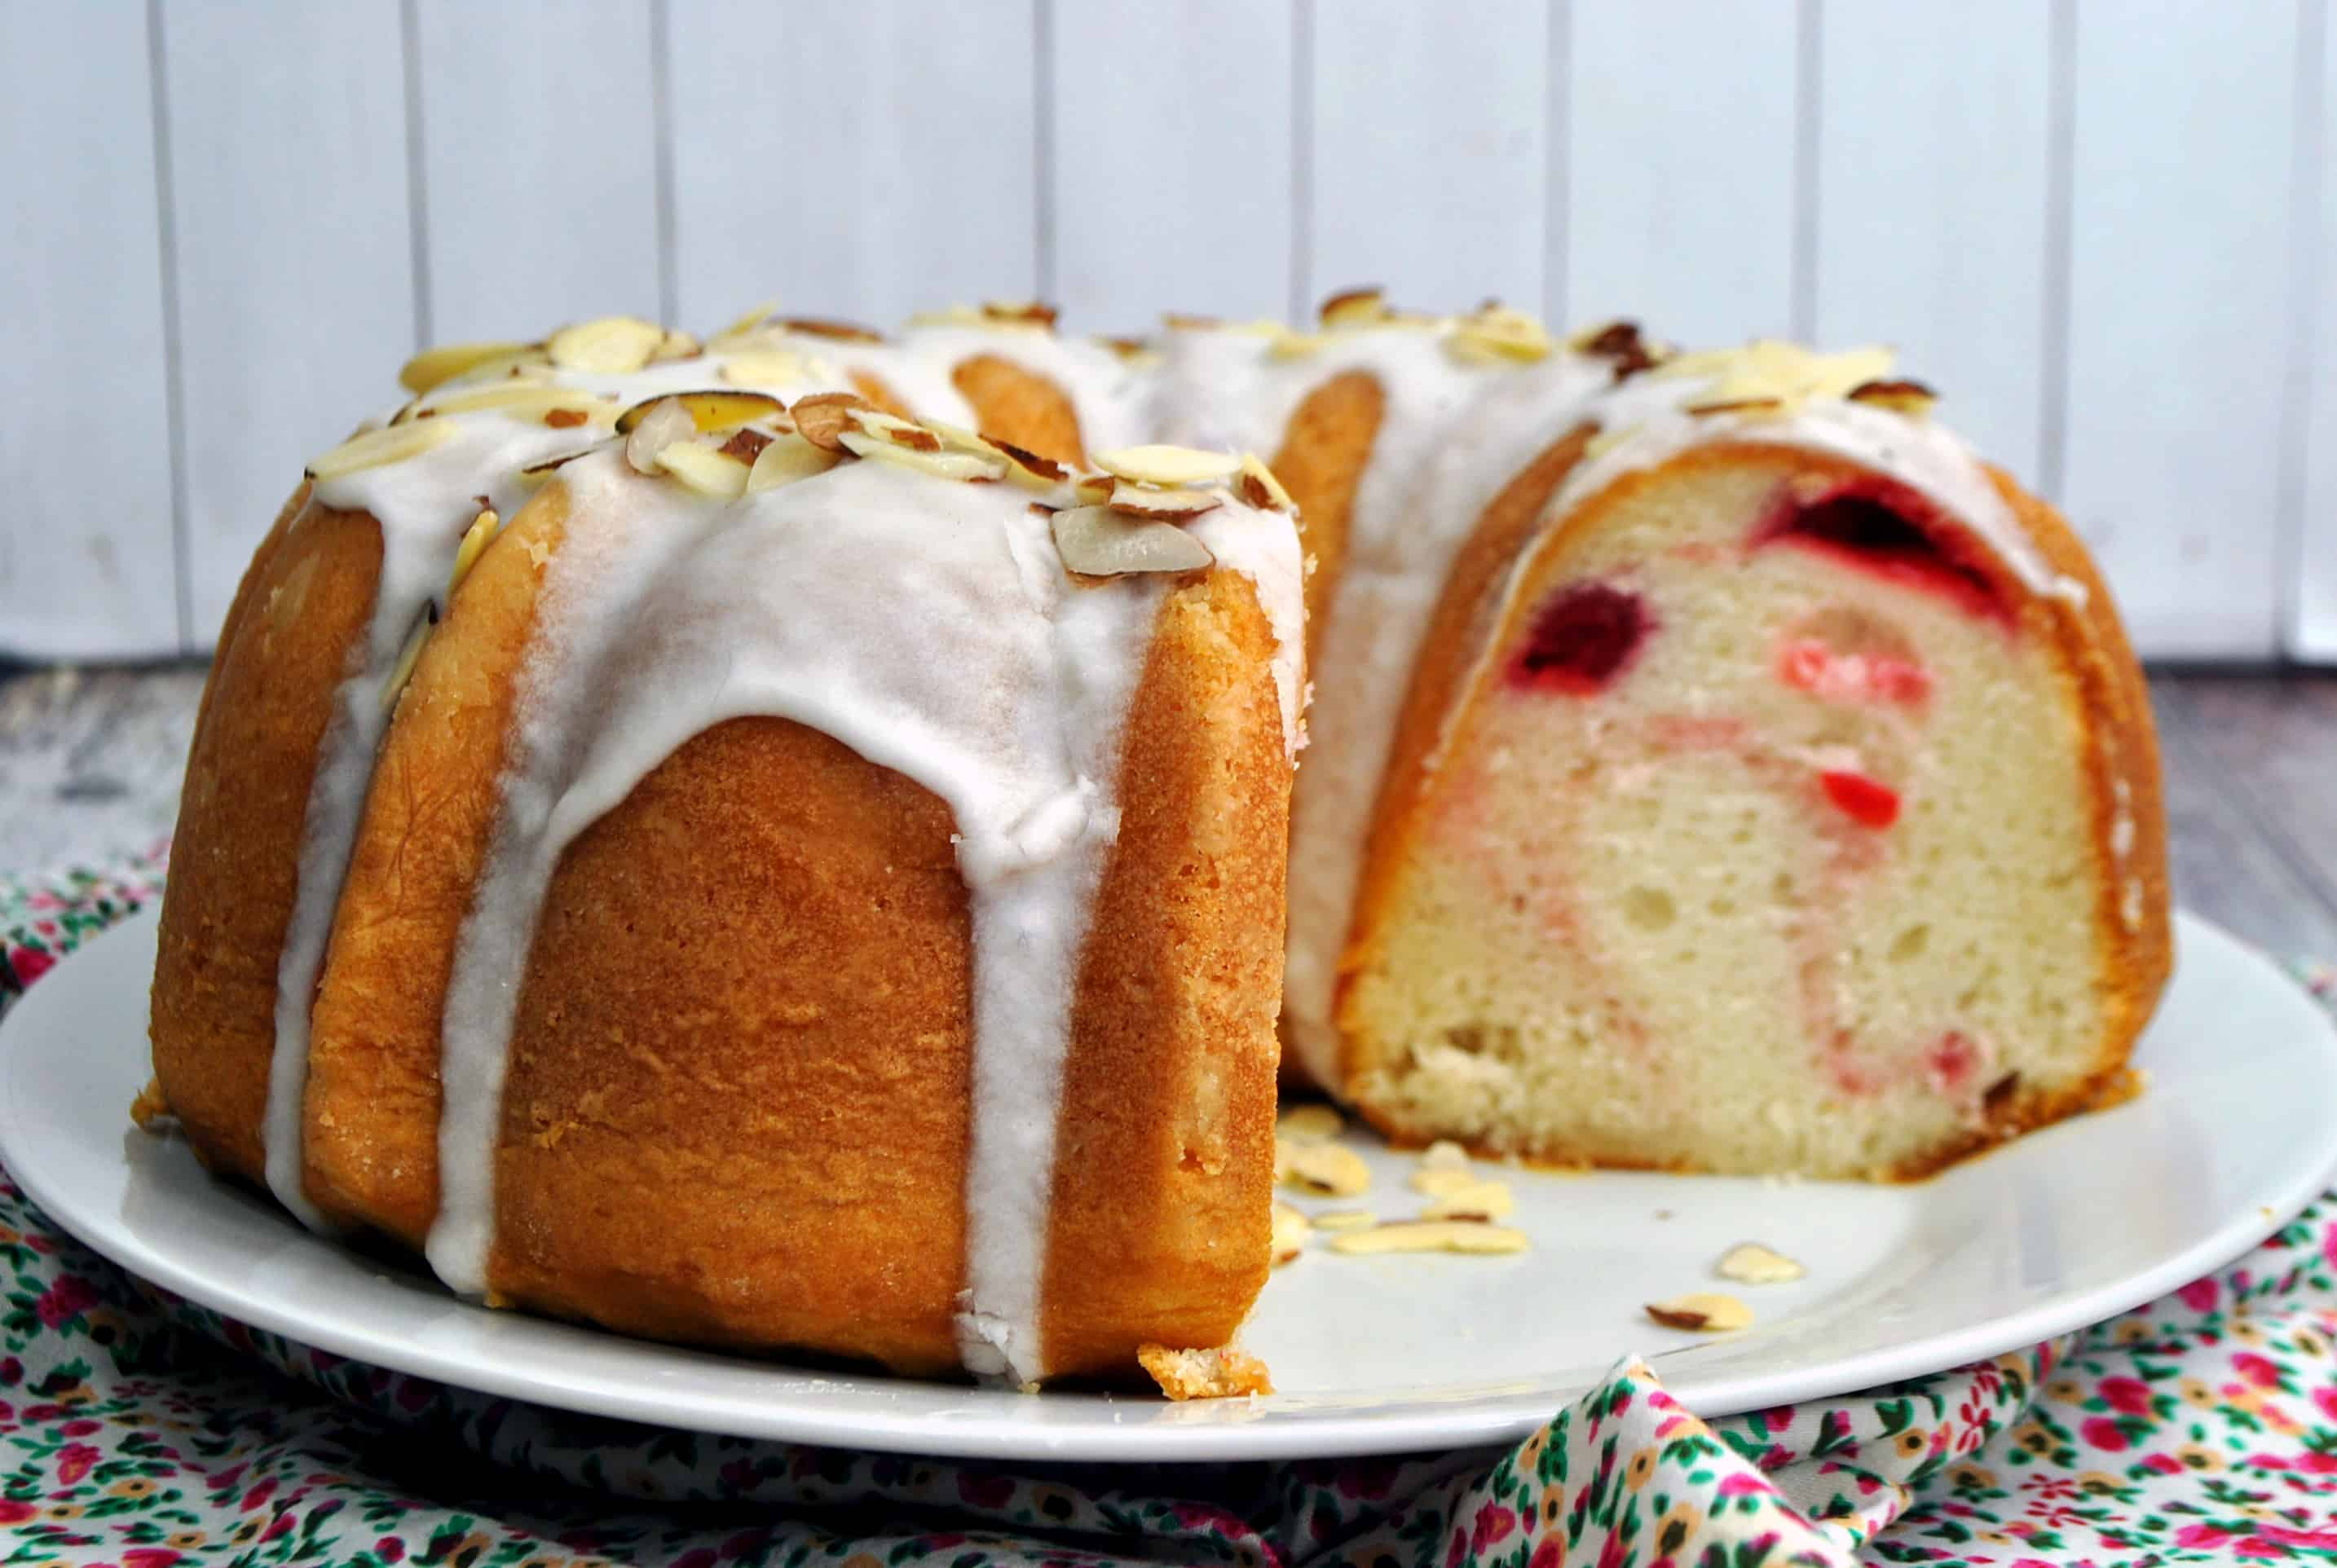 Cherry Almond Bundt Cake